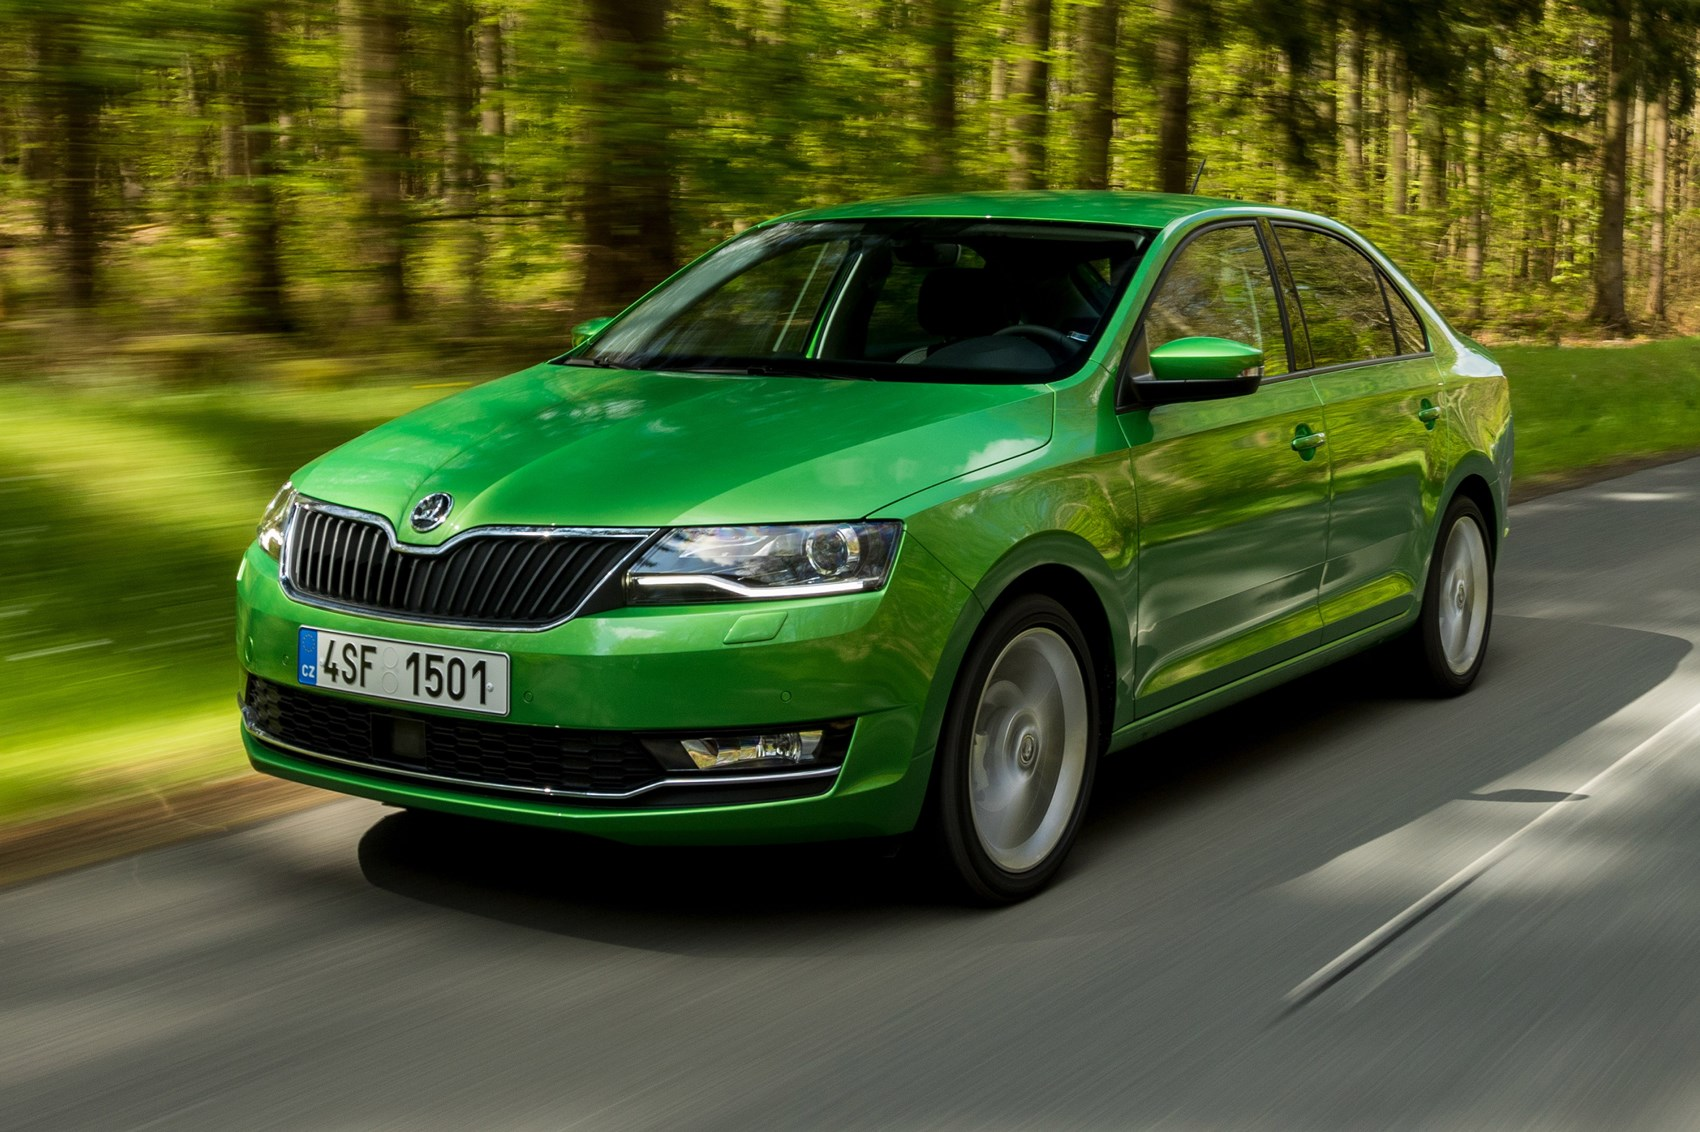 Murray Skoda Plymouth Used Cars Skoda Rapid 1 6 Tdi Se L 2017 Review By Car Magazine